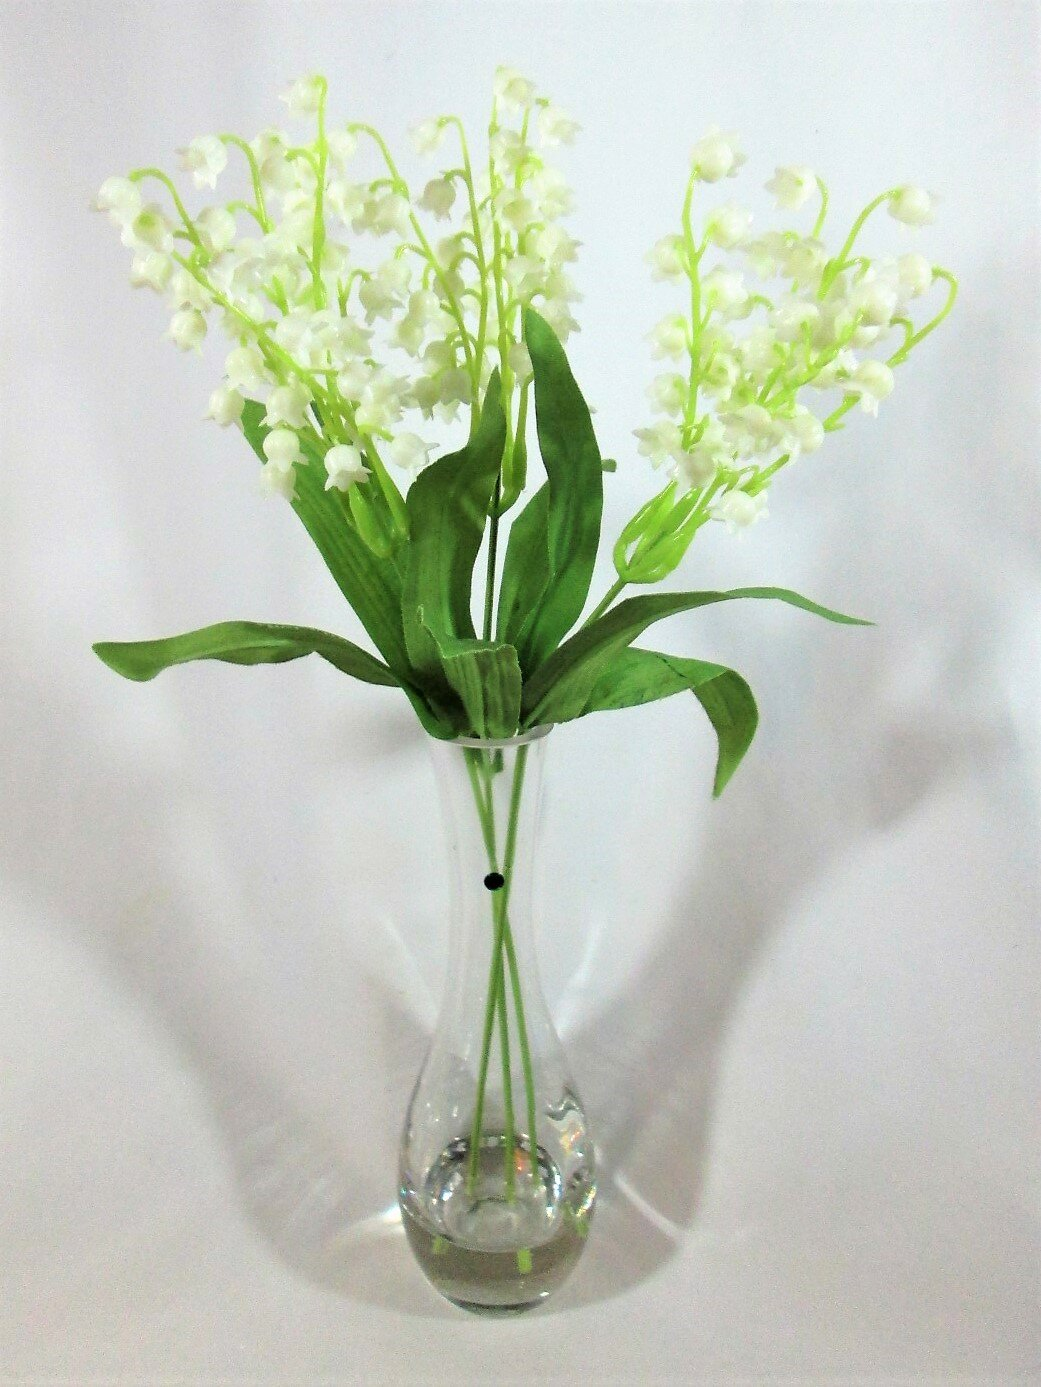 Rosdorf park may birth month lily of the valley flower in vase wayfair izmirmasajfo